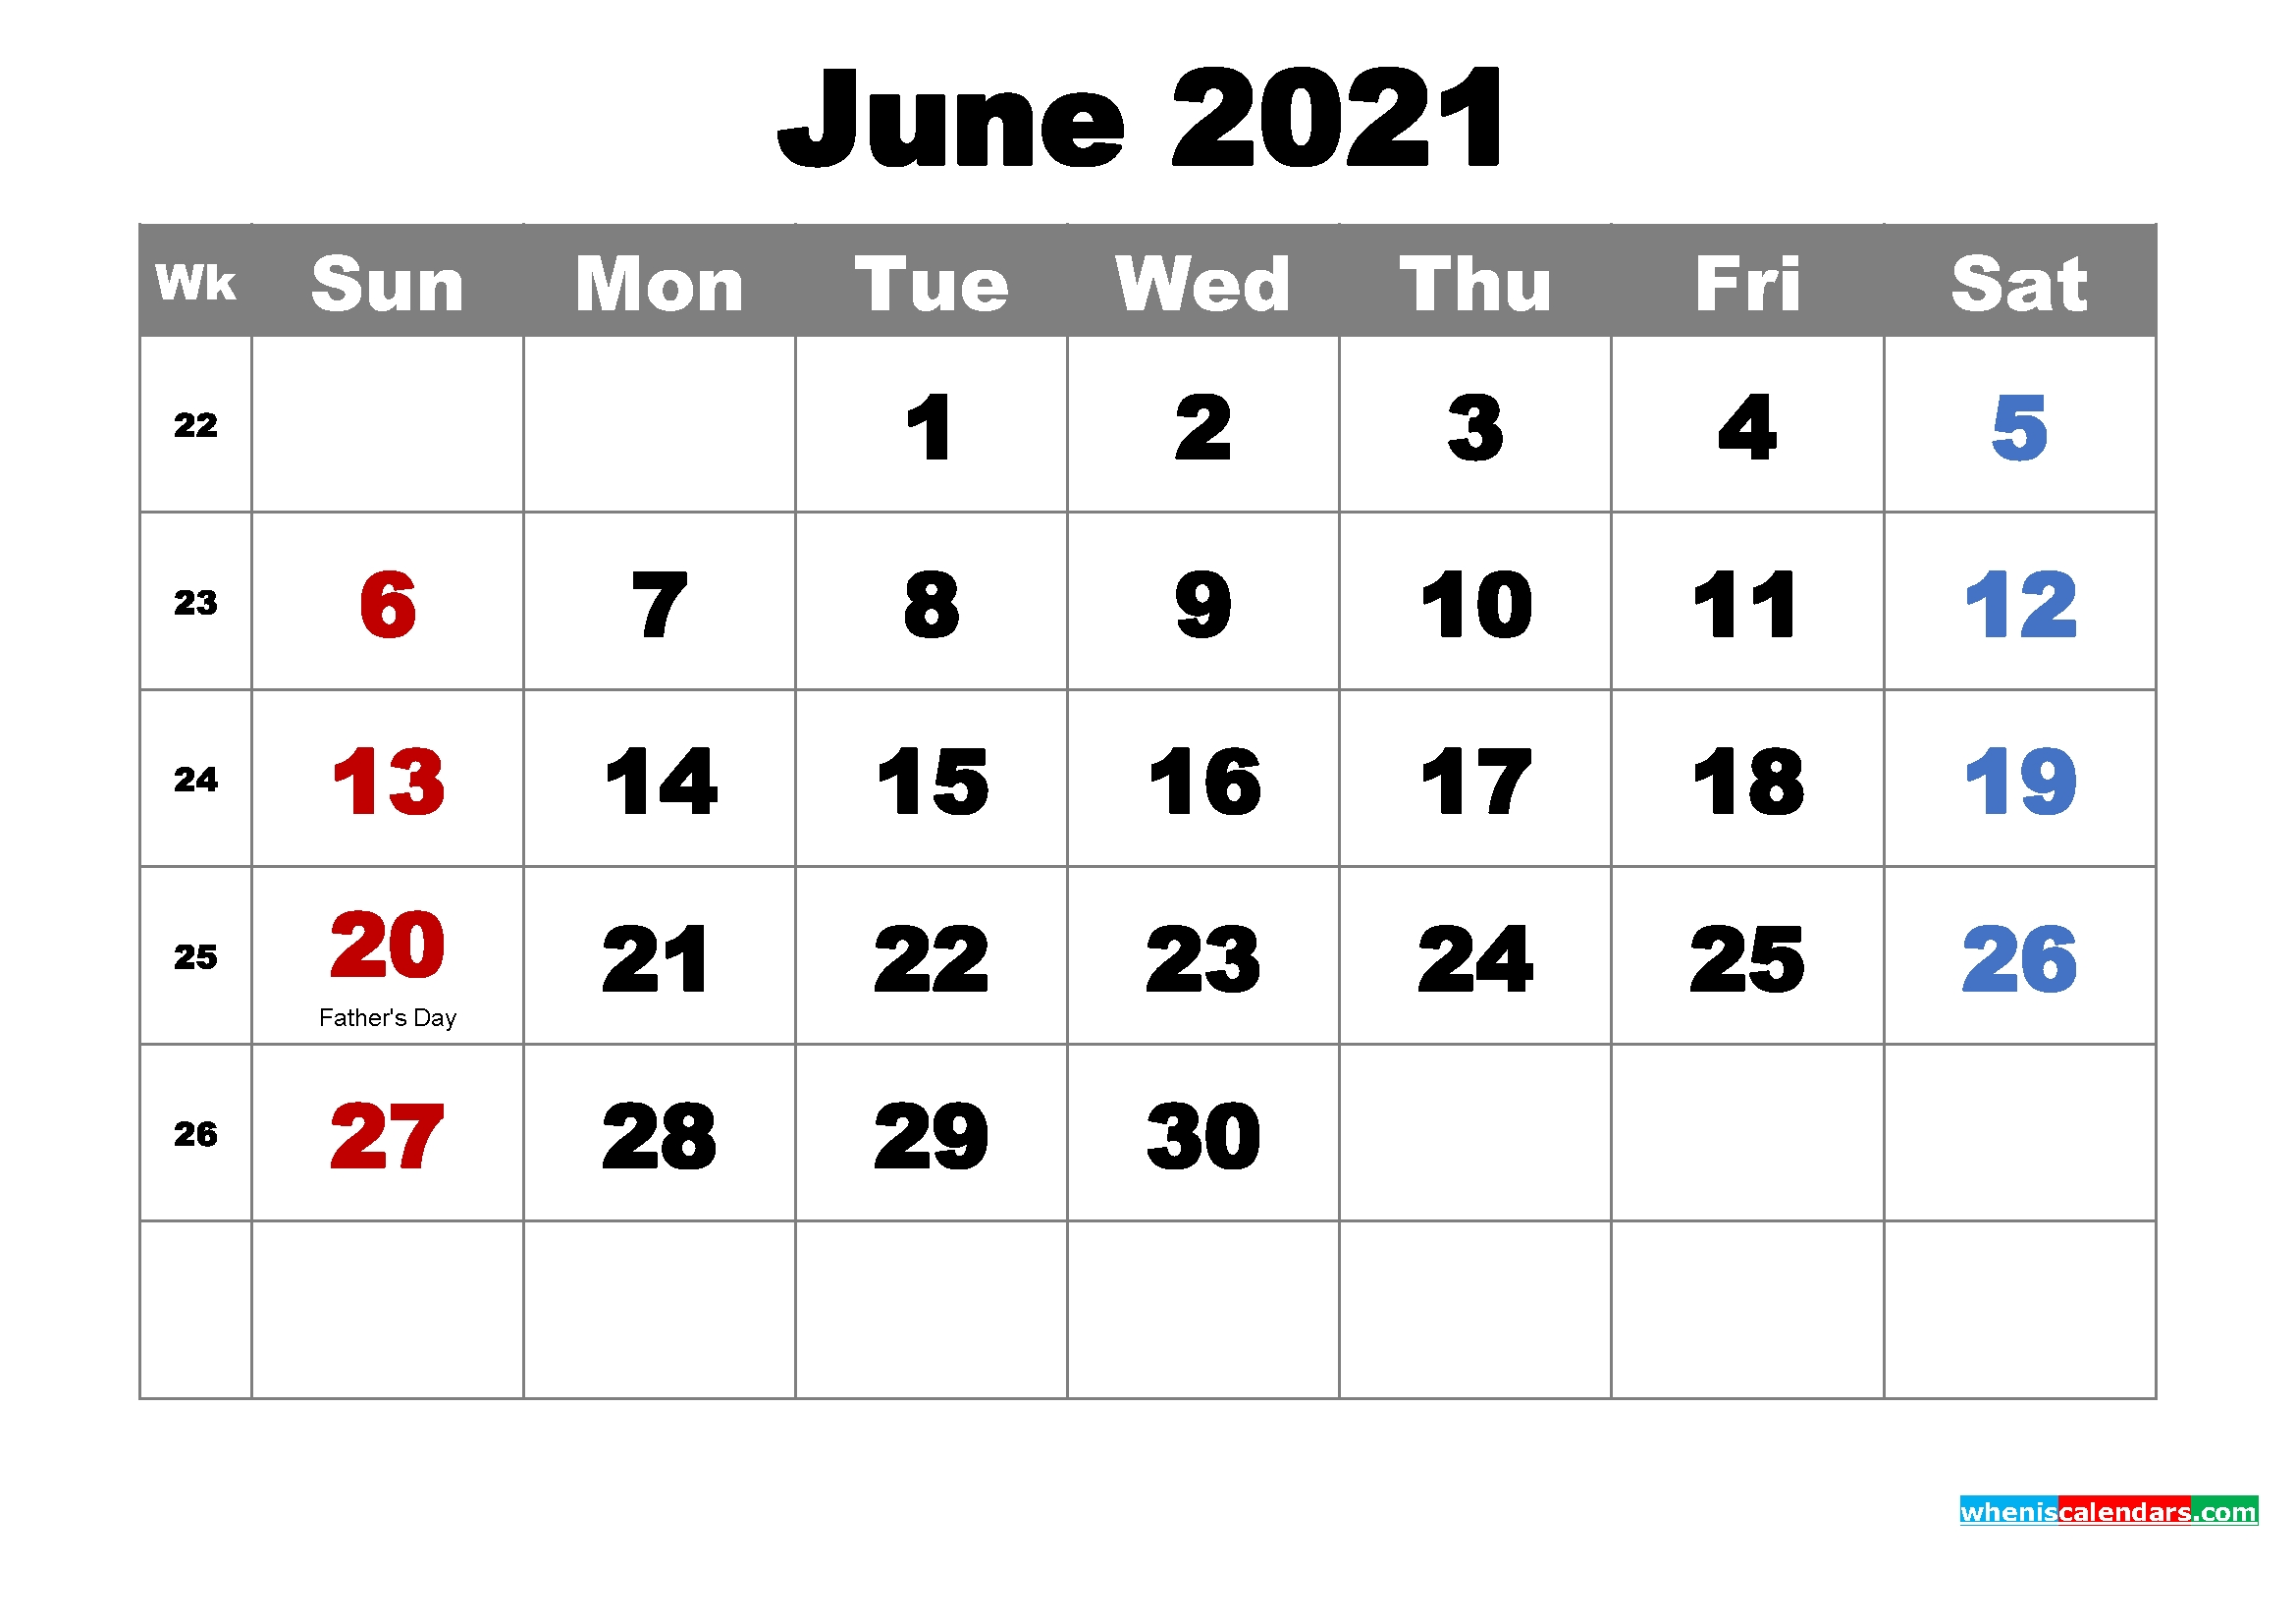 Free Printable June 2021 Calendar With Holidays As Word, Pdf - Free Printable 2020 Monthly June 2021 Calendar Panchang